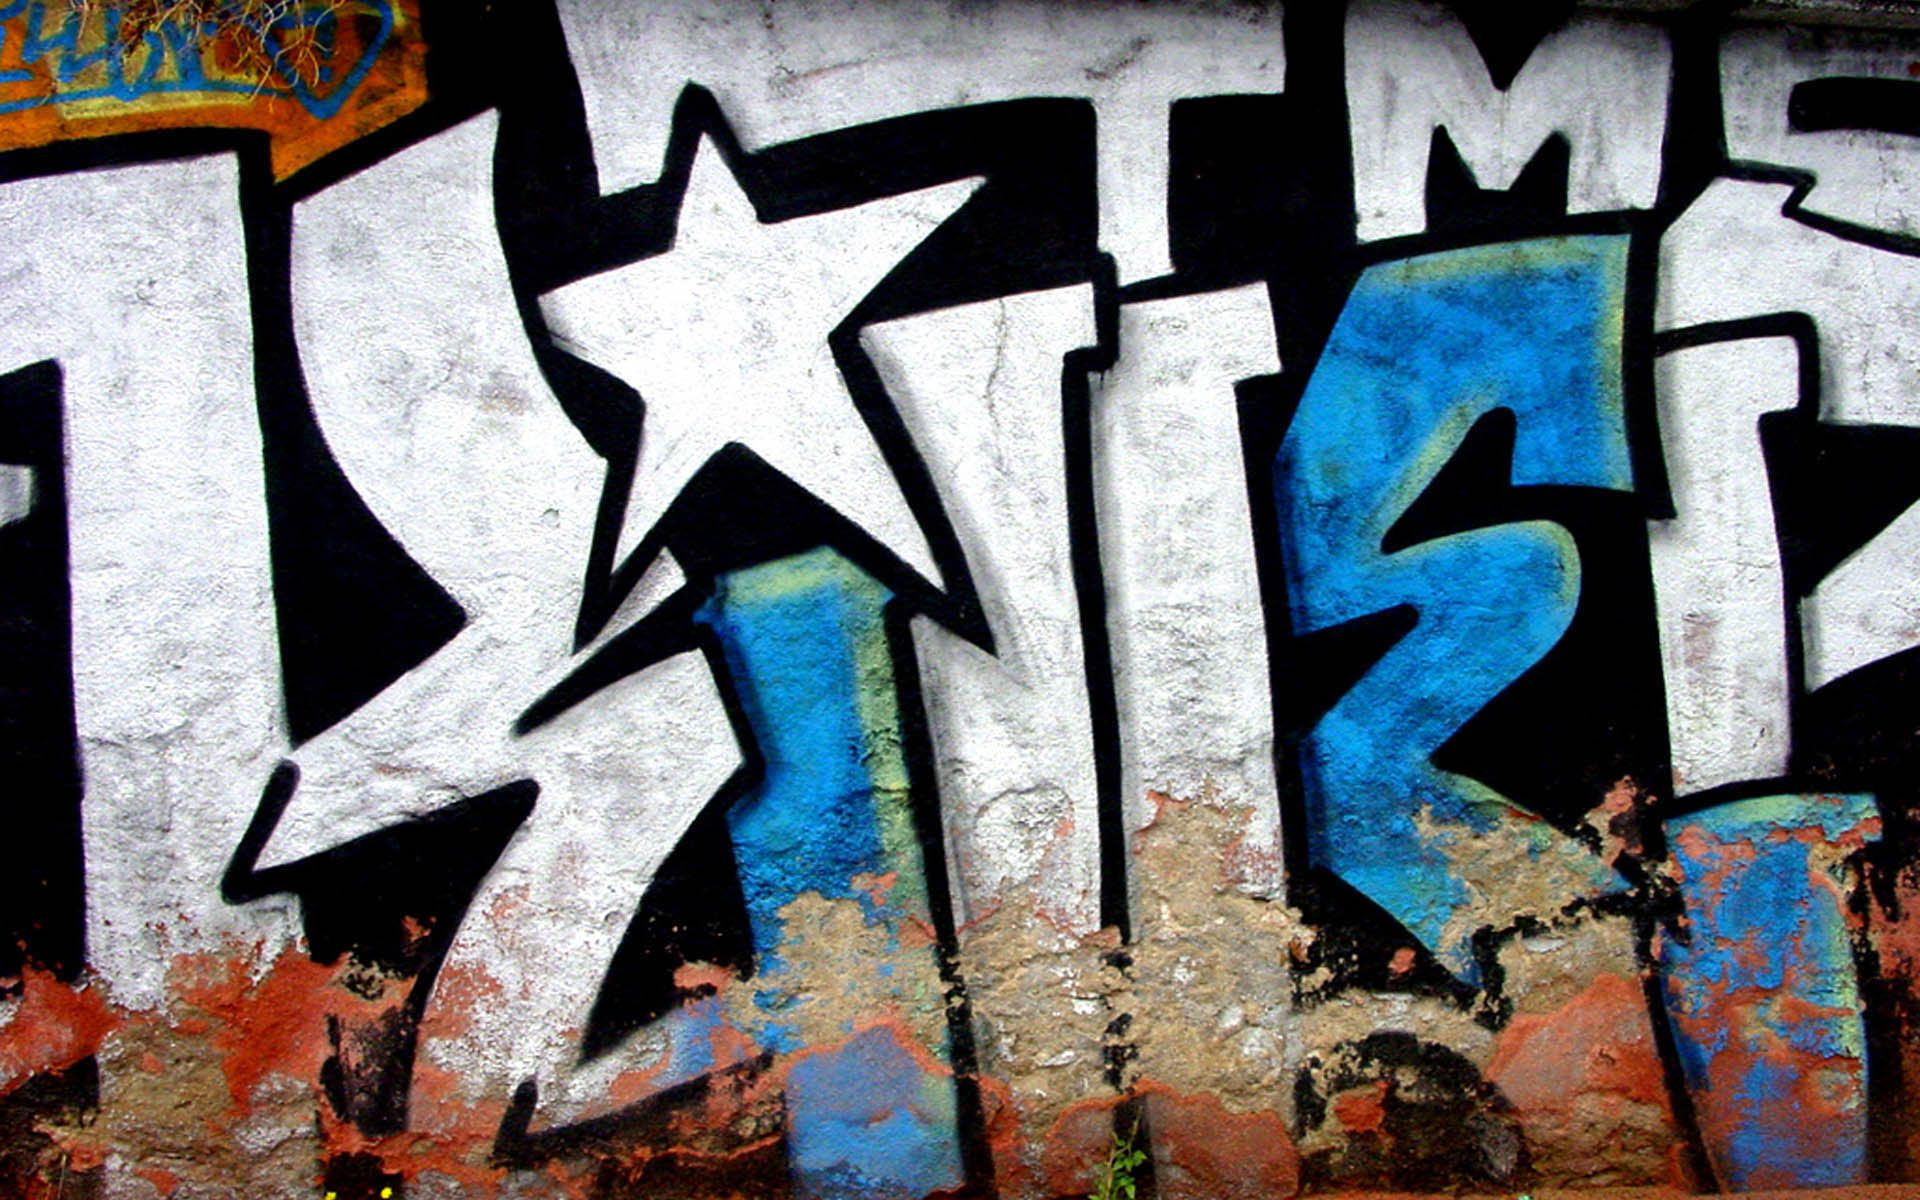 Abstract wallpaper hip hop graffiti wallpaper free for hd 1920x1200 voltagebd Image collections